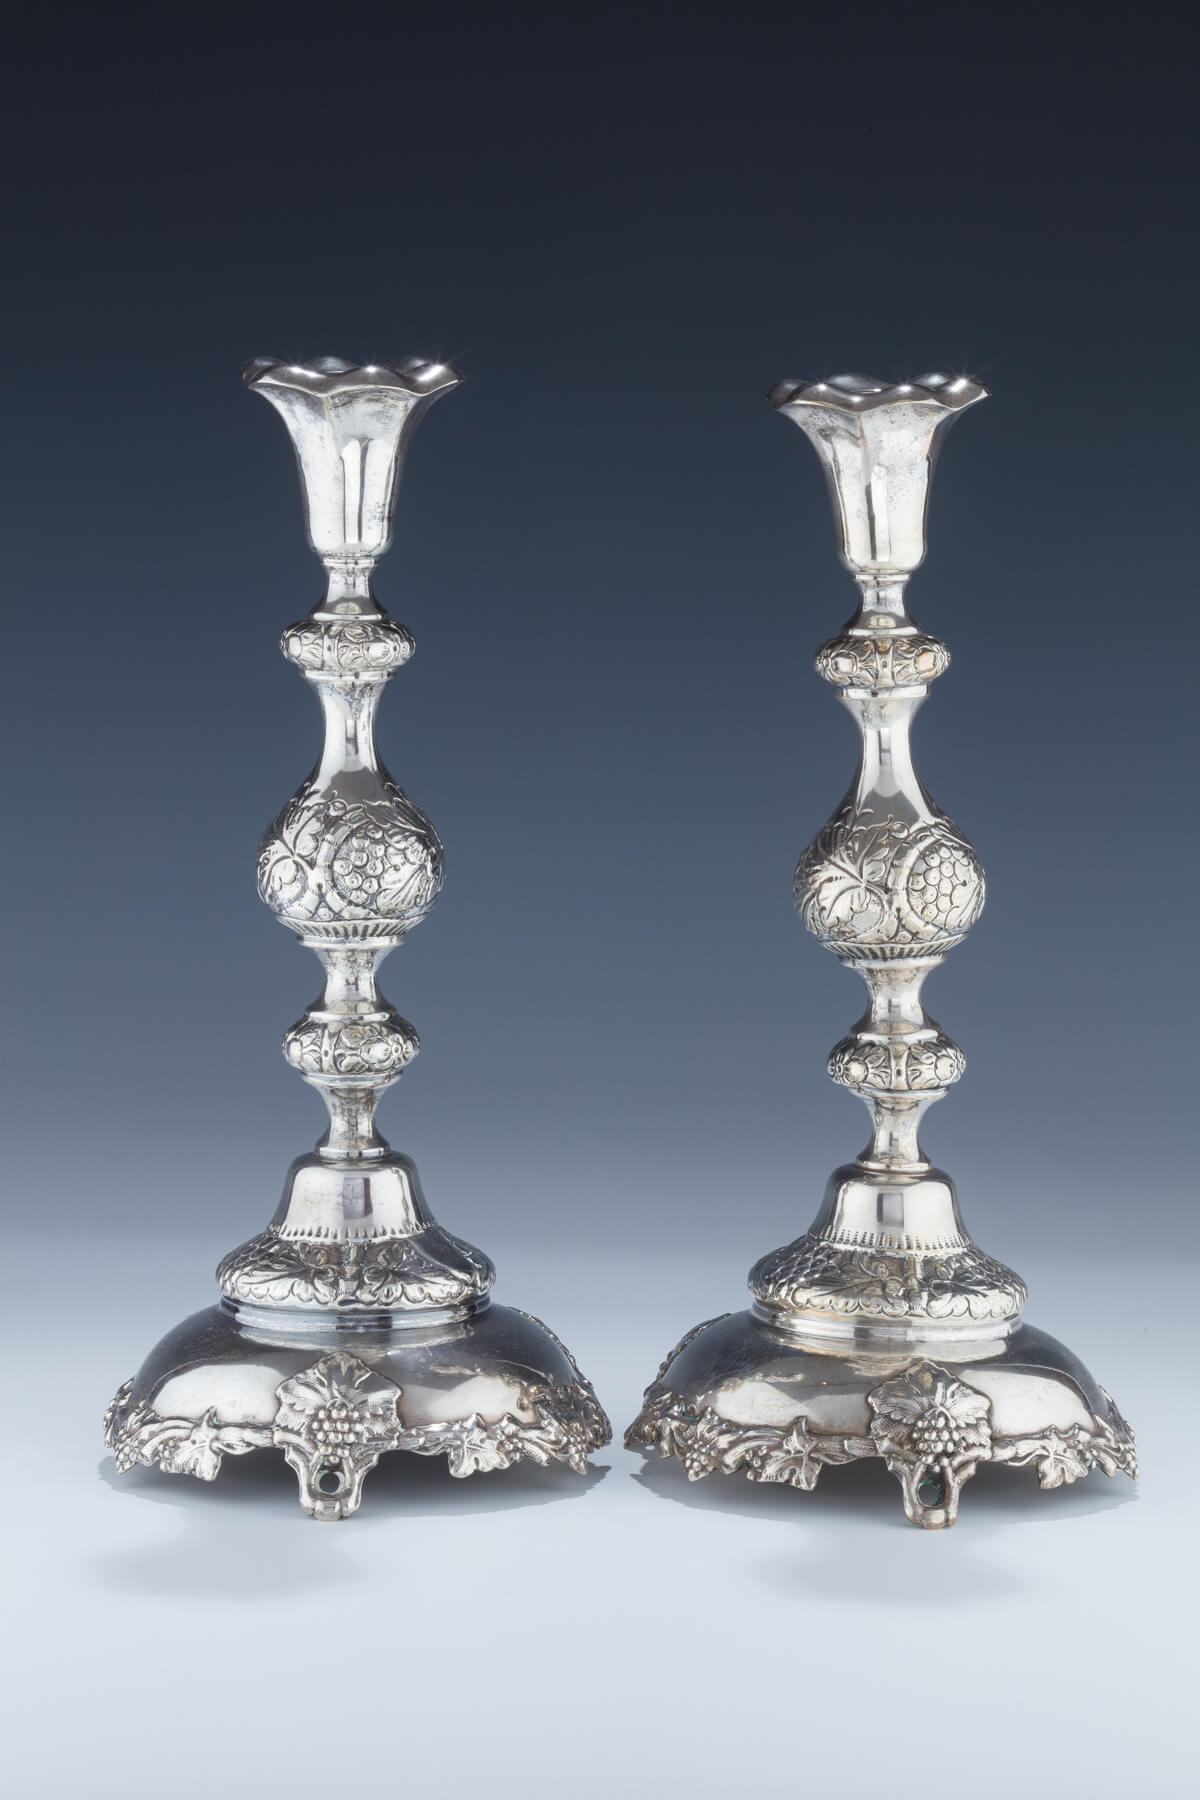 001. A Pair of Large Silver Candlesticks